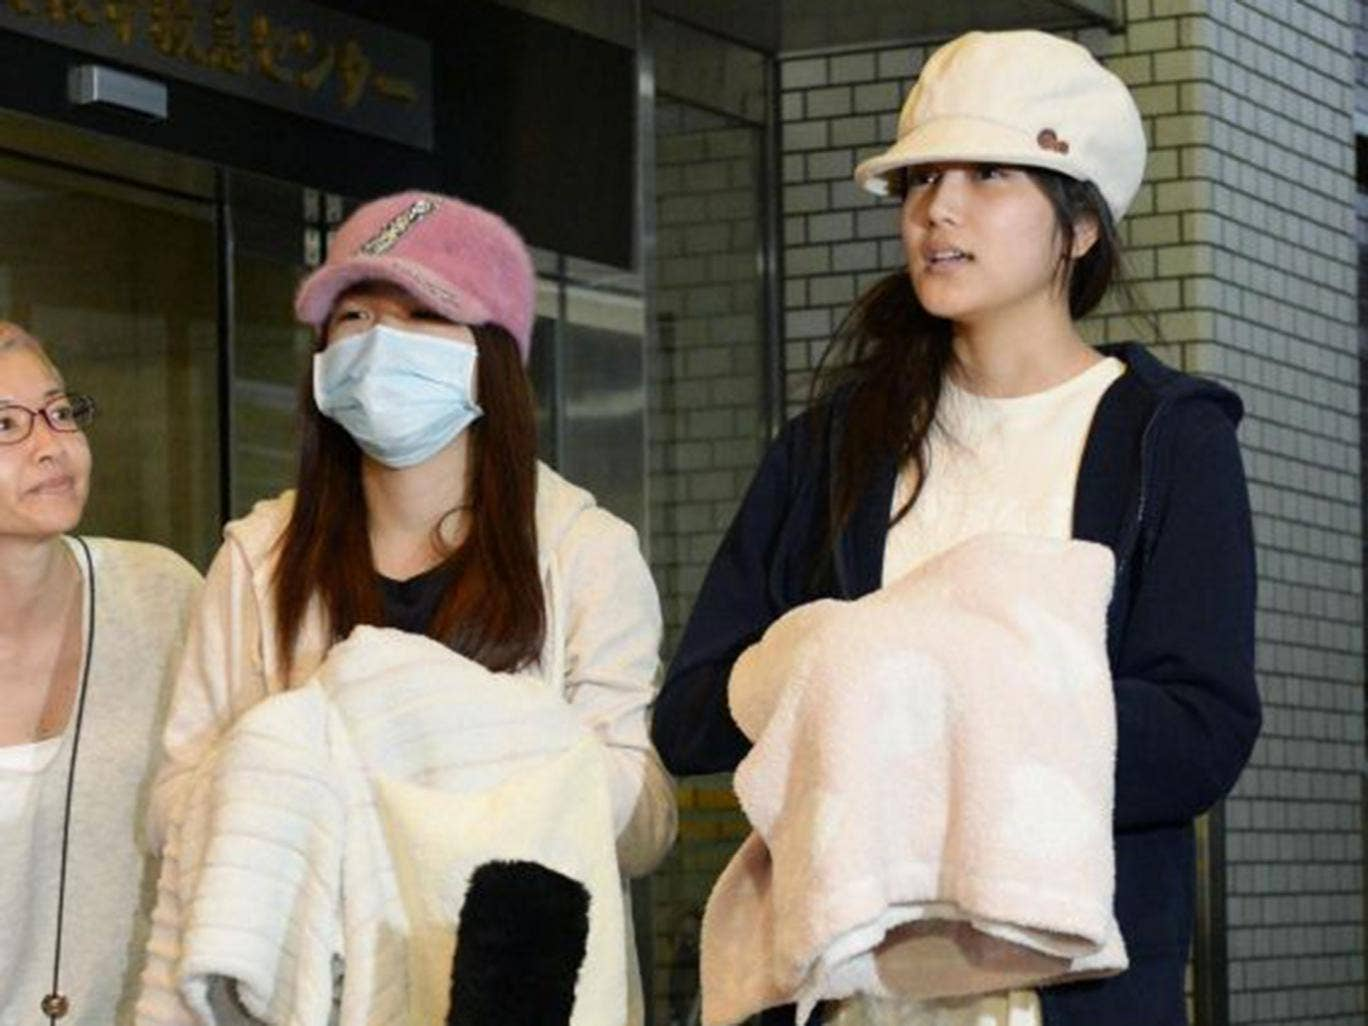 Rina Kawaei and Anna Iriyama were discharged from hospital